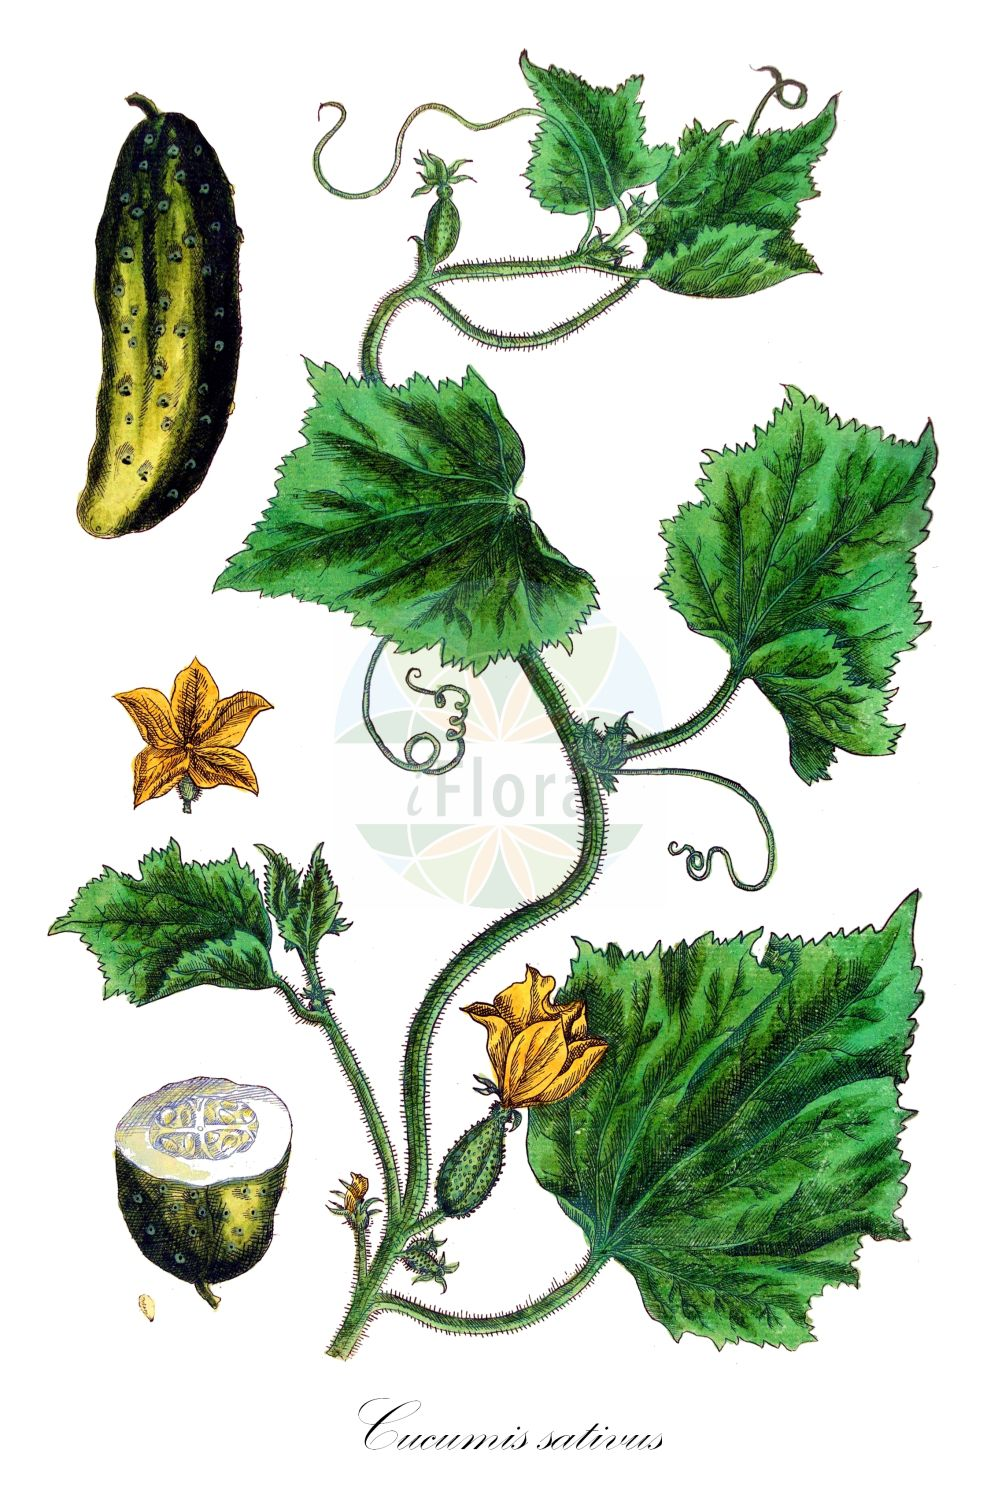 Historische Abbildung von Cucumis sativus. Das Bild zeigt Blatt, Bluete, Frucht und Same. ---- Historical Drawing of Cucumis sativus.The image is showing leaf, flower, fruit and seed.(Cucumis sativus,Cucumis esculentus,,Cucumis,Cucurbitaceae,Kuerbisgewaechse,Cucurbit family,Blatt,Bluete,Frucht,Same,leaf,flower,fruit,seed,Blackwell (1737-1739))